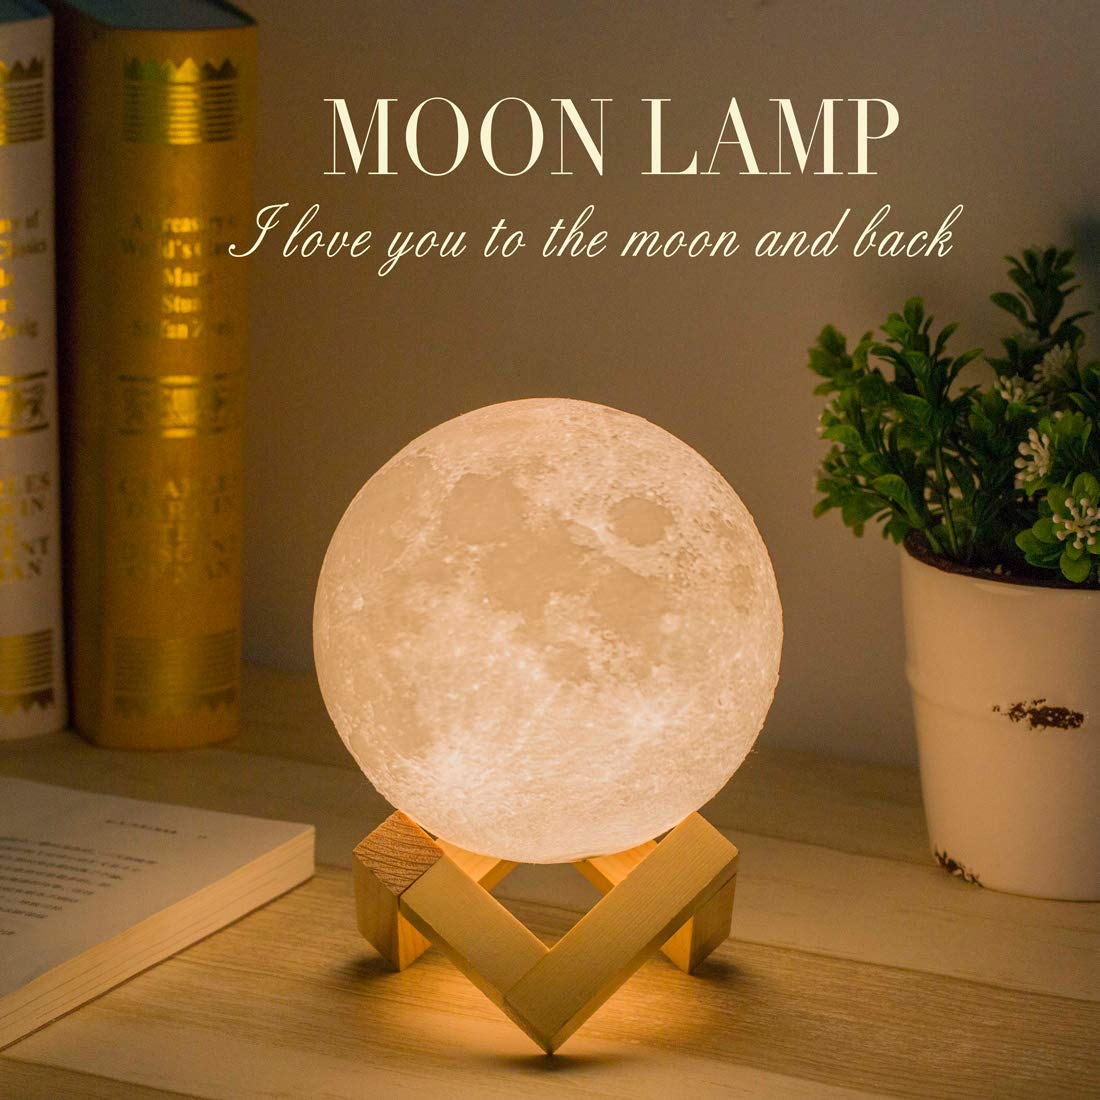 Moon Lamp, Balkwan 7.1 inches 3D Printing Moon Light uses Dimmable and Touch Control Design,Romantic Funny Birthday Gifts for Women,Men,Kids,Child and Baby. Rustic Home Decor Rechargeable Night Light by Balkwan